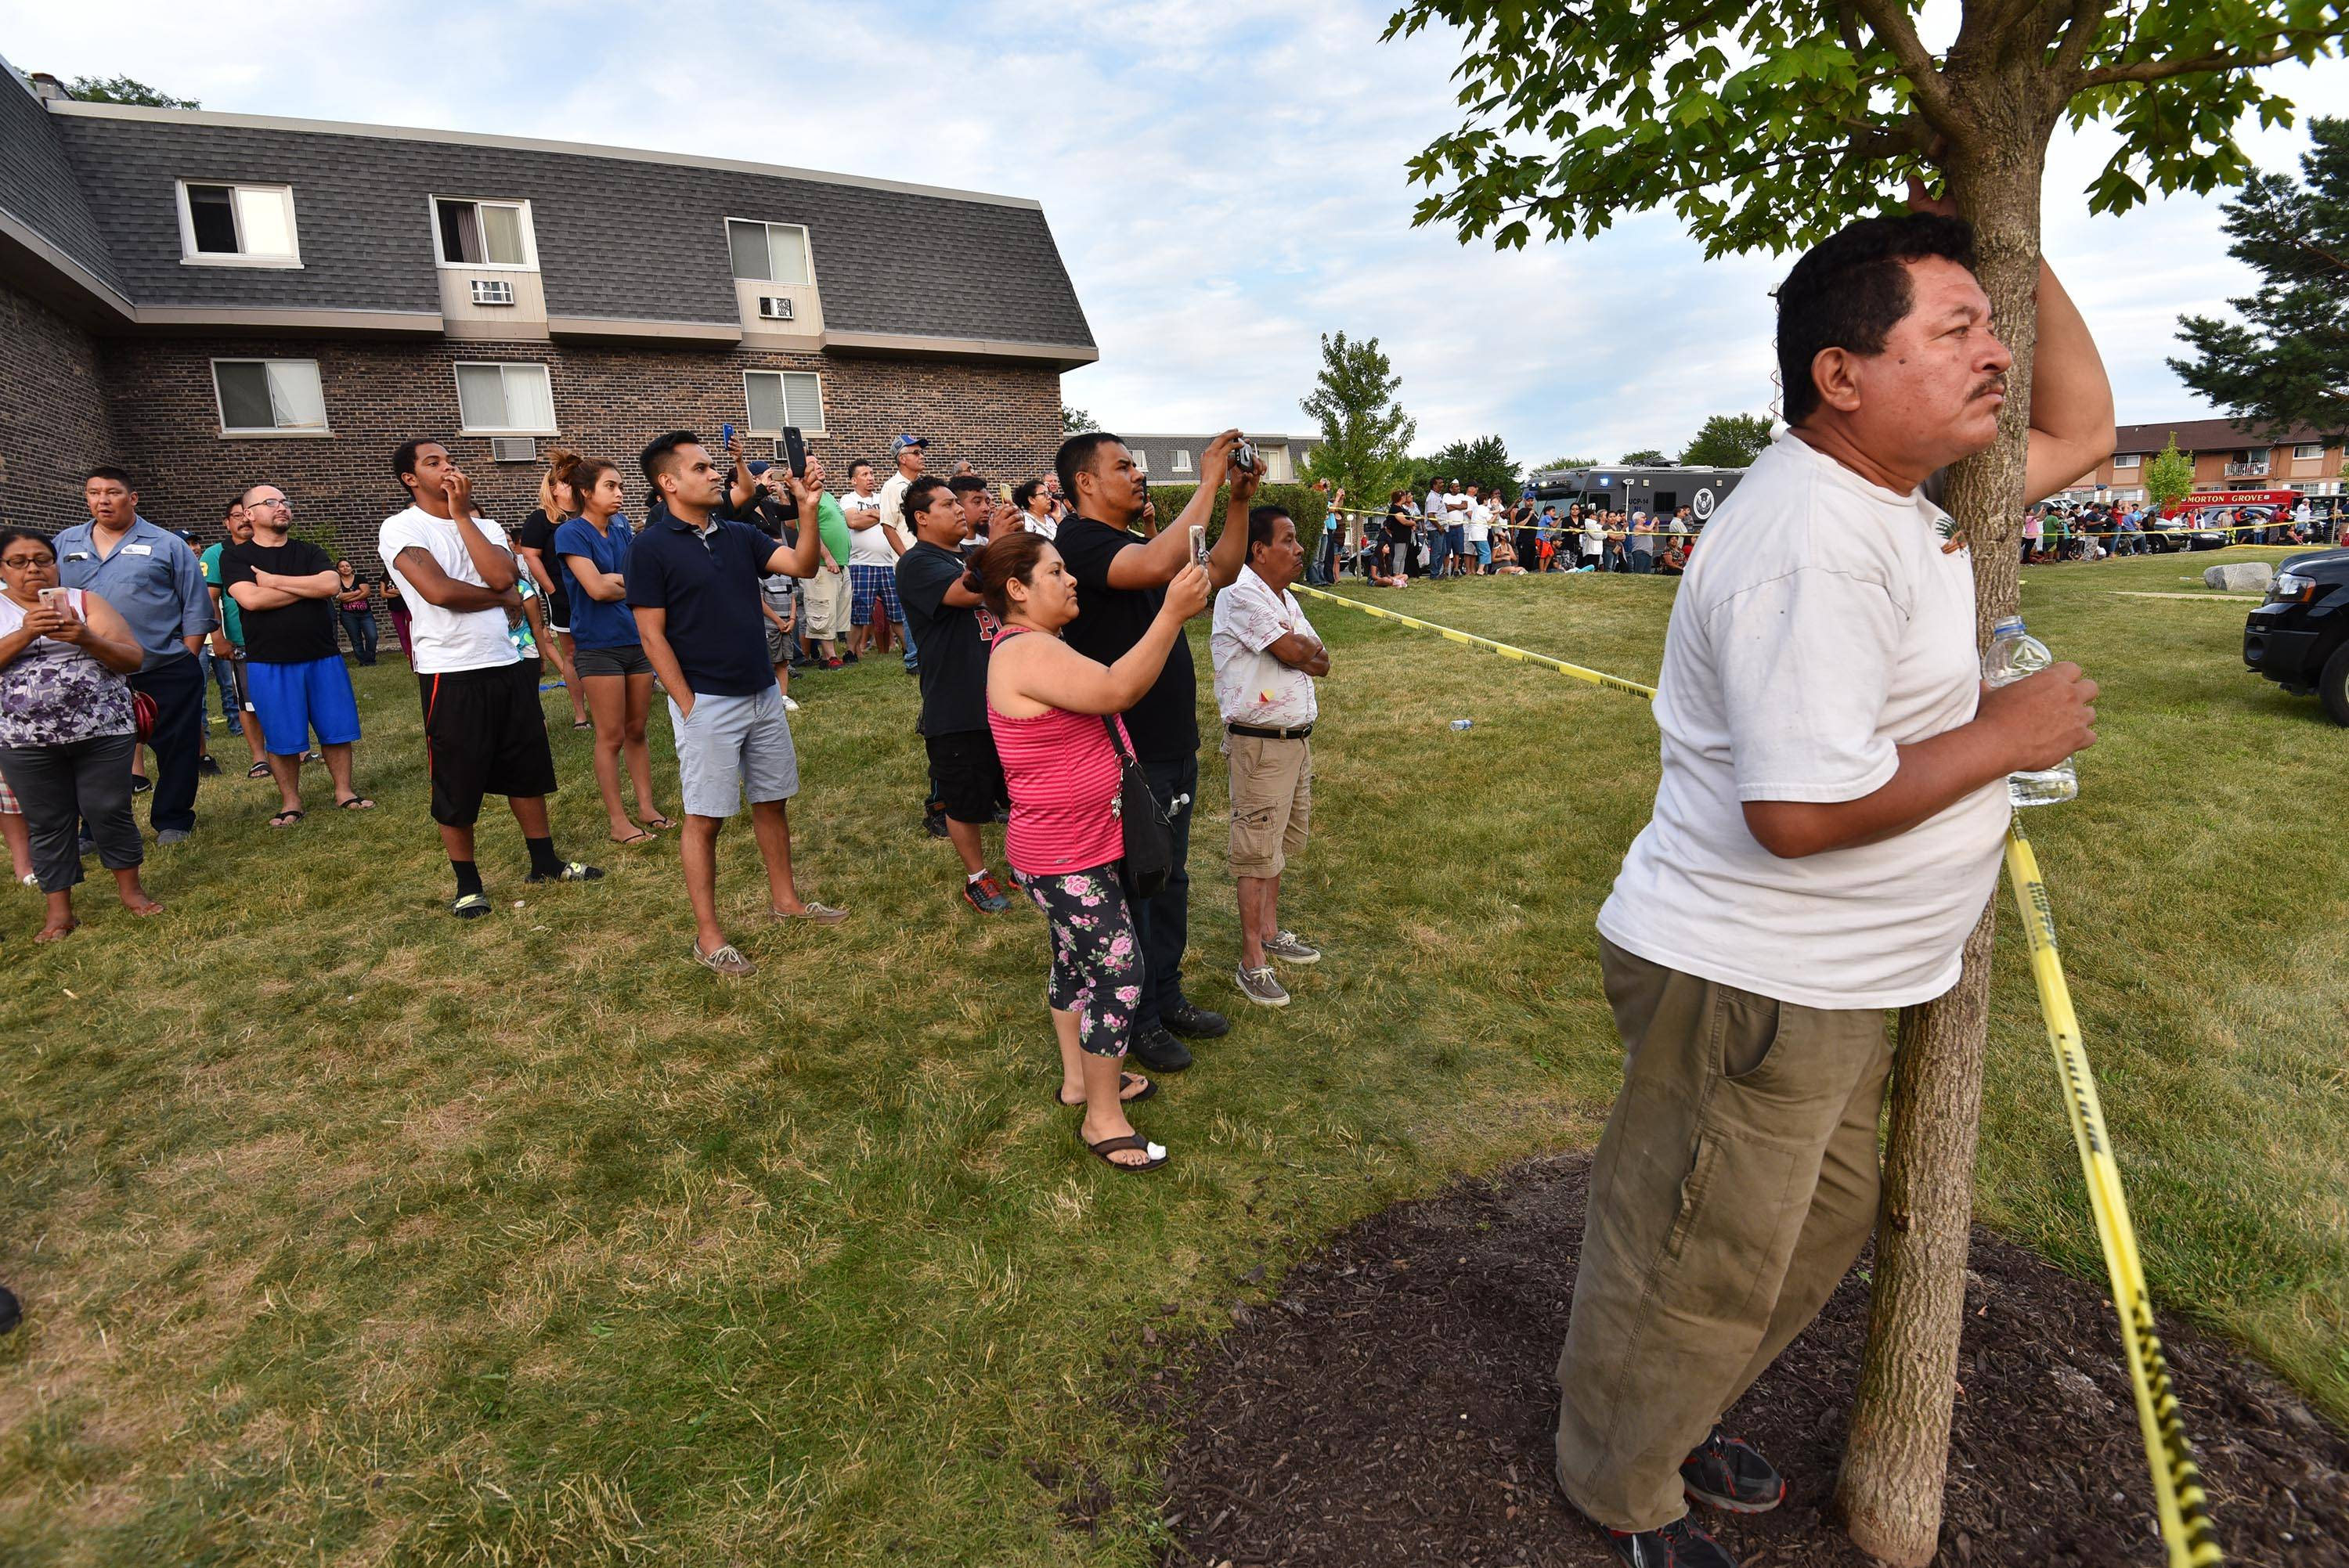 Residents and neighbors watch as firefighters continue to douse the fire at the River Trail condominiums Wednesday evening, seven hours after the fire started.